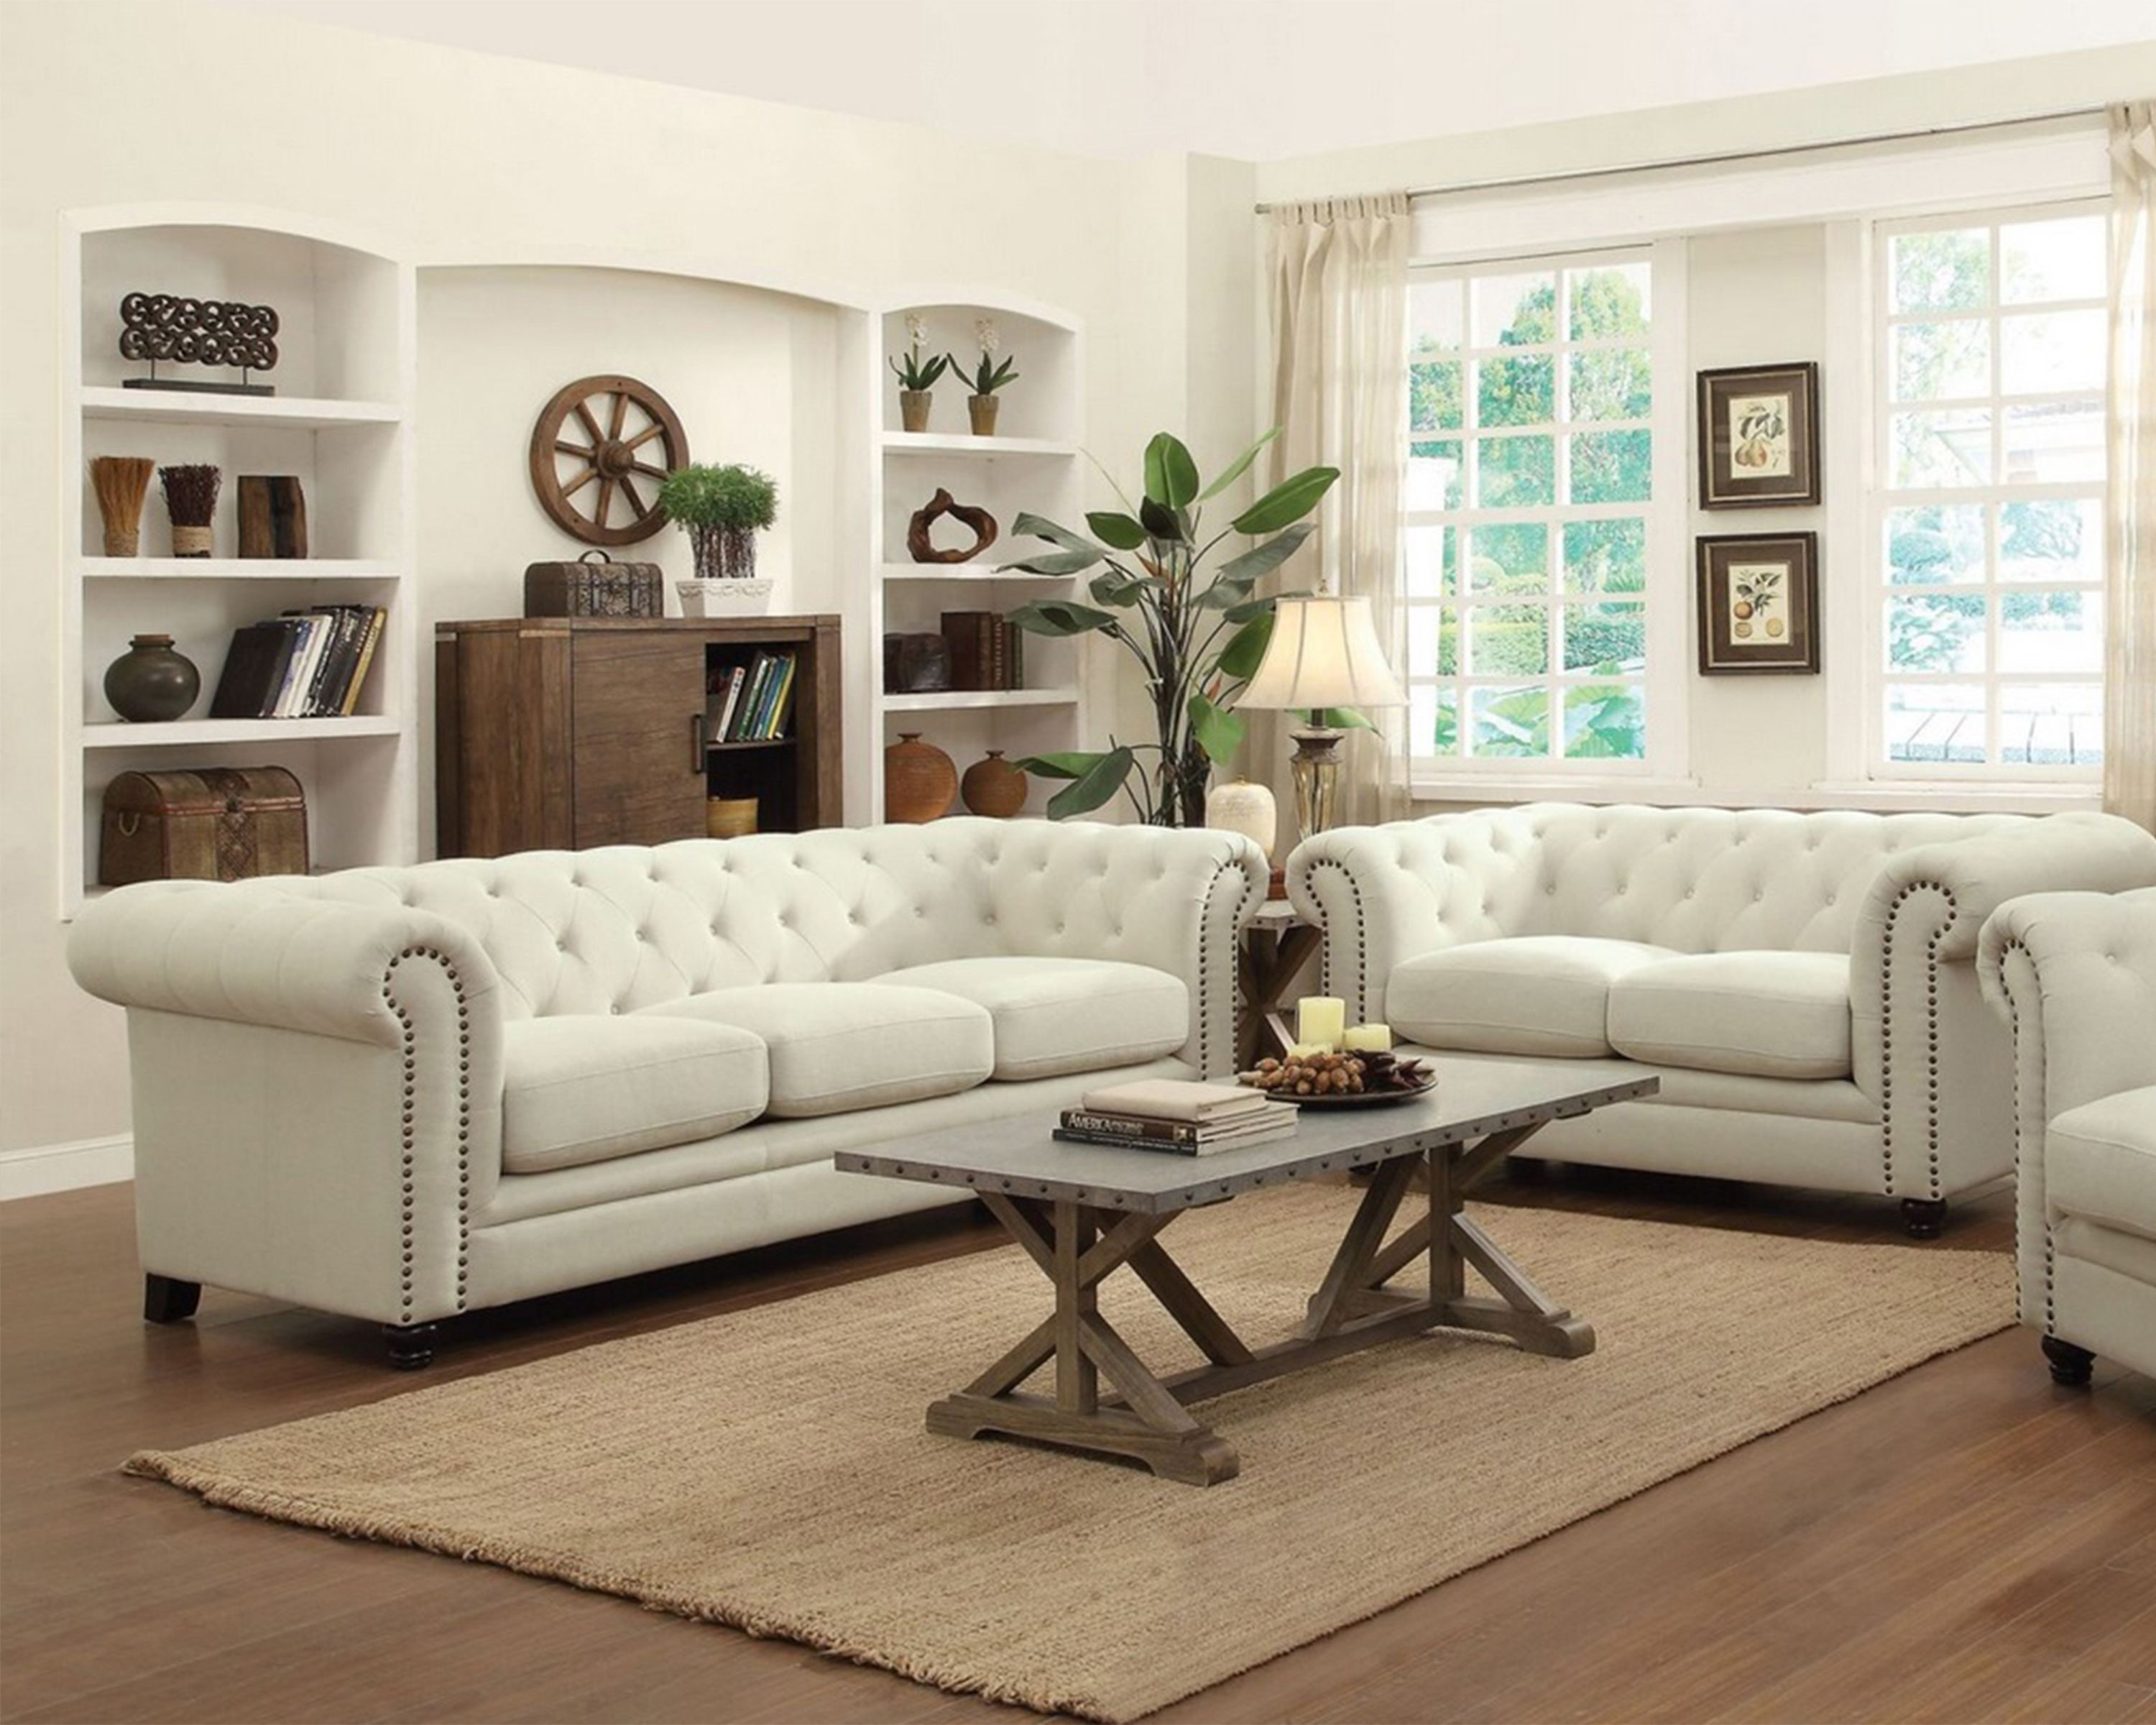 Beauty Living Room Furniture Sets With White Fabric Chesterfield ...